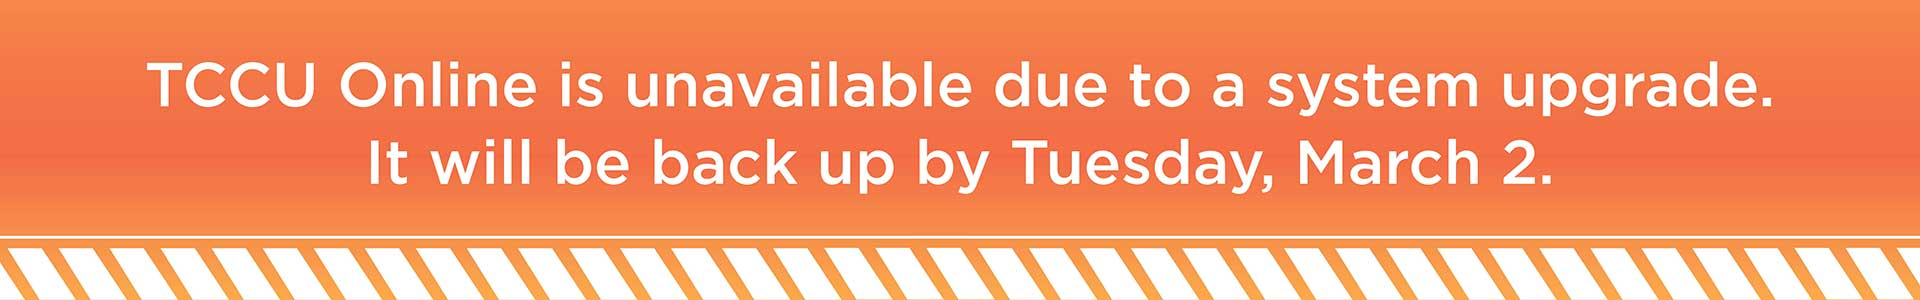 TCCU Online is unavailable due to system upgrade. It will be back up by Tuesday, March 2.